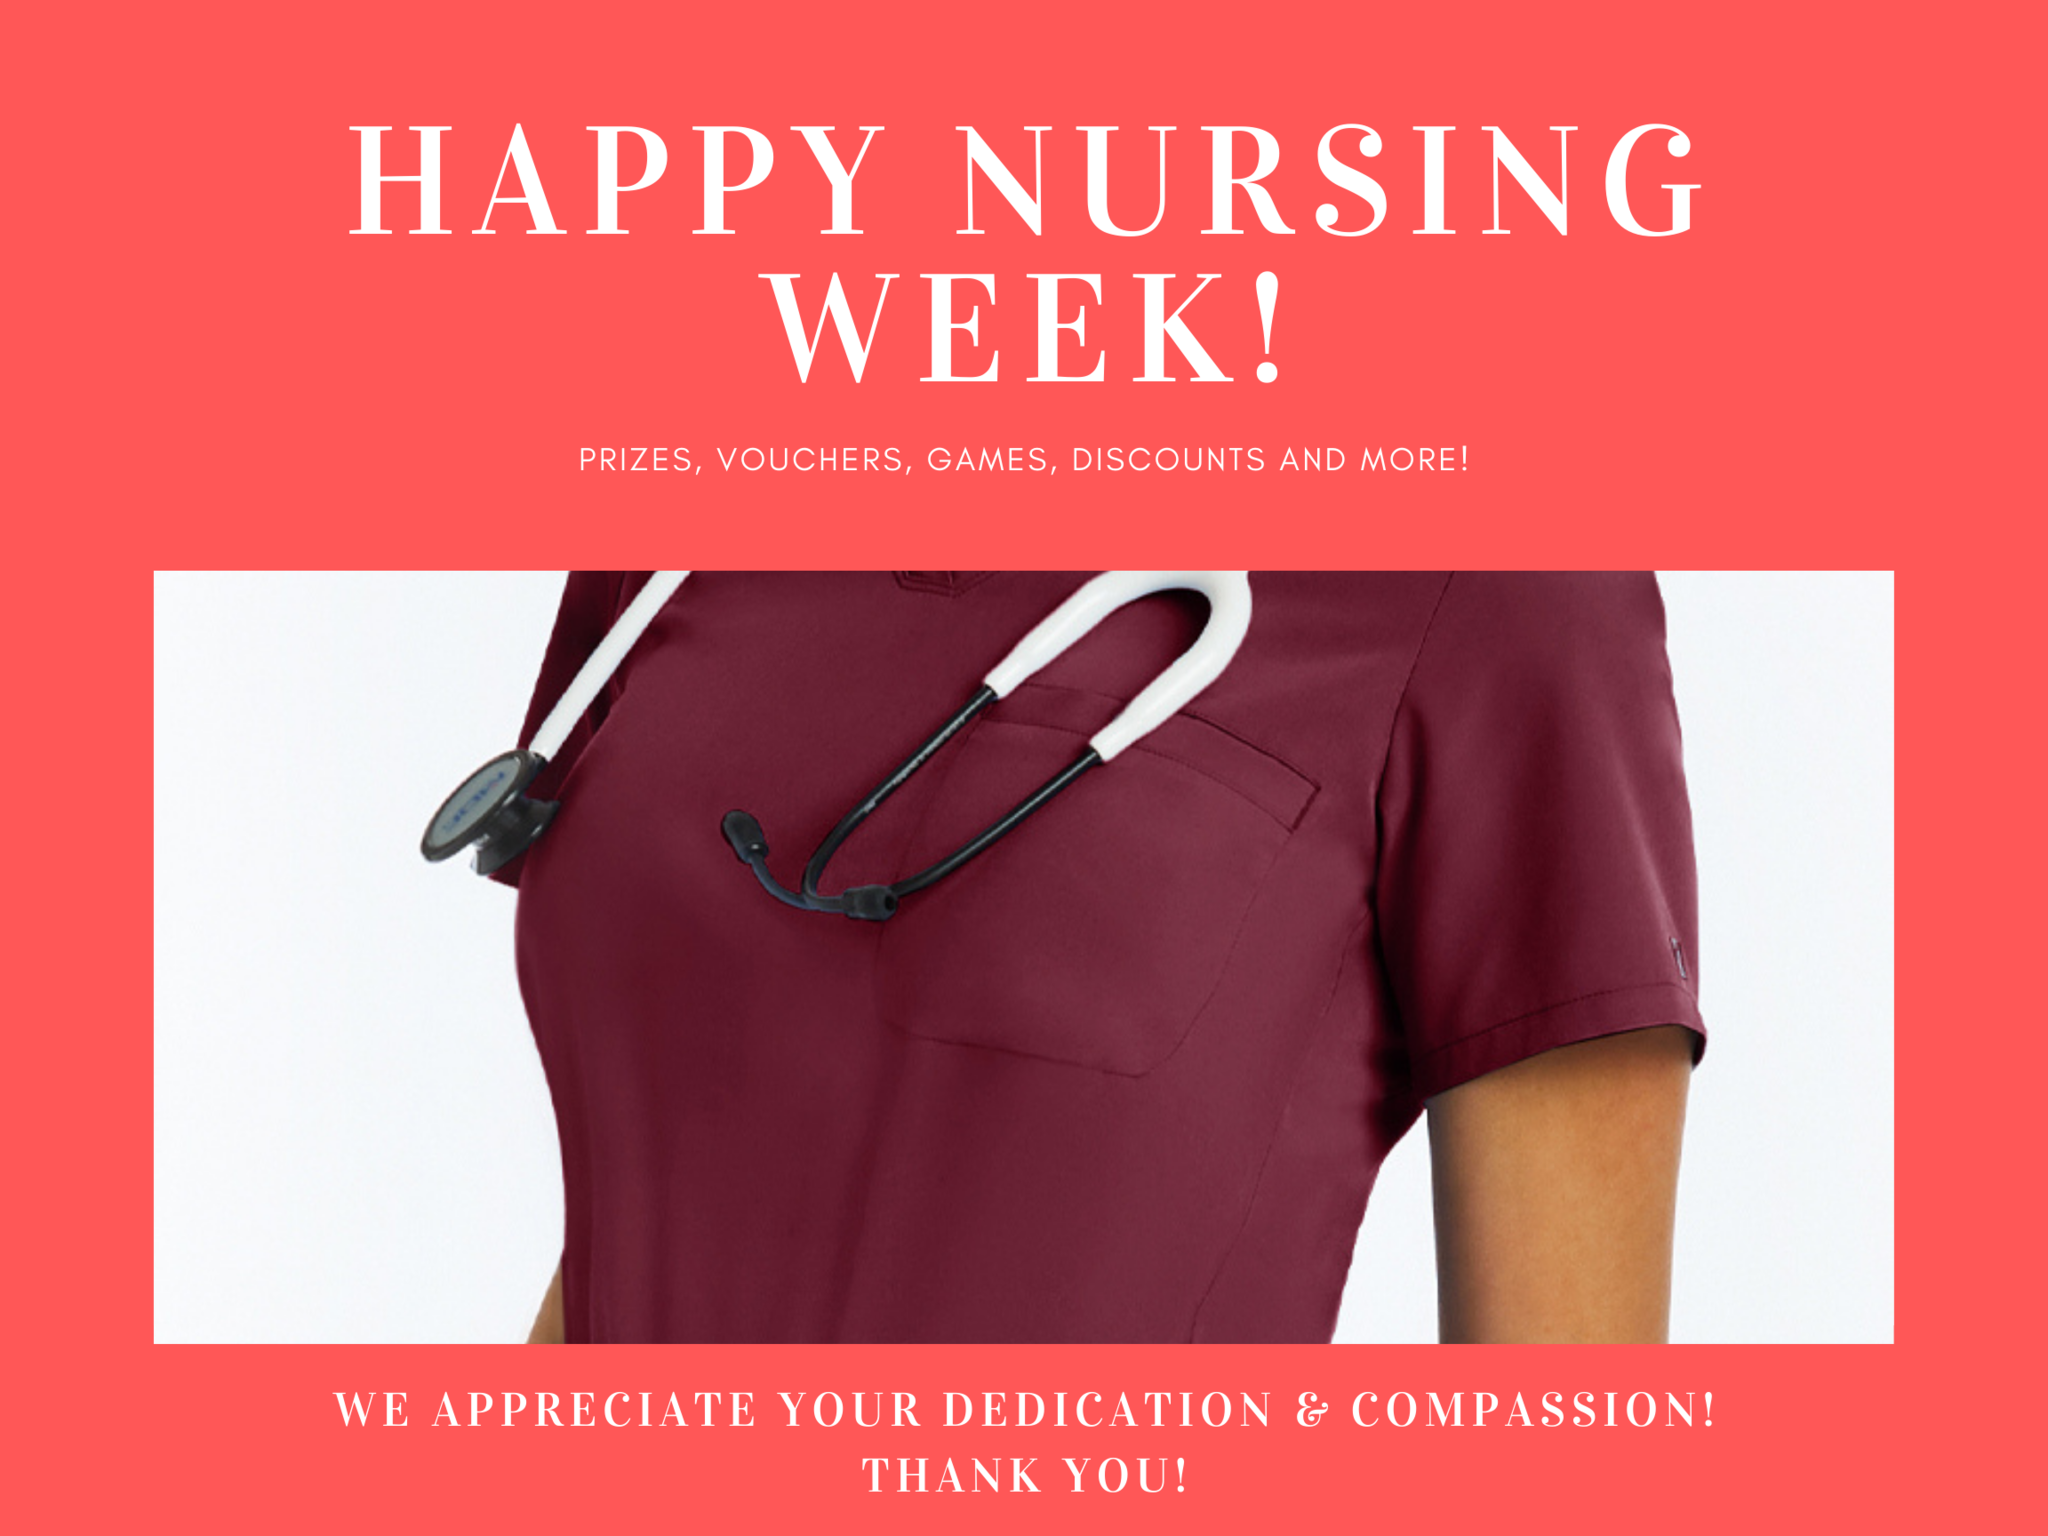 Nursing Week